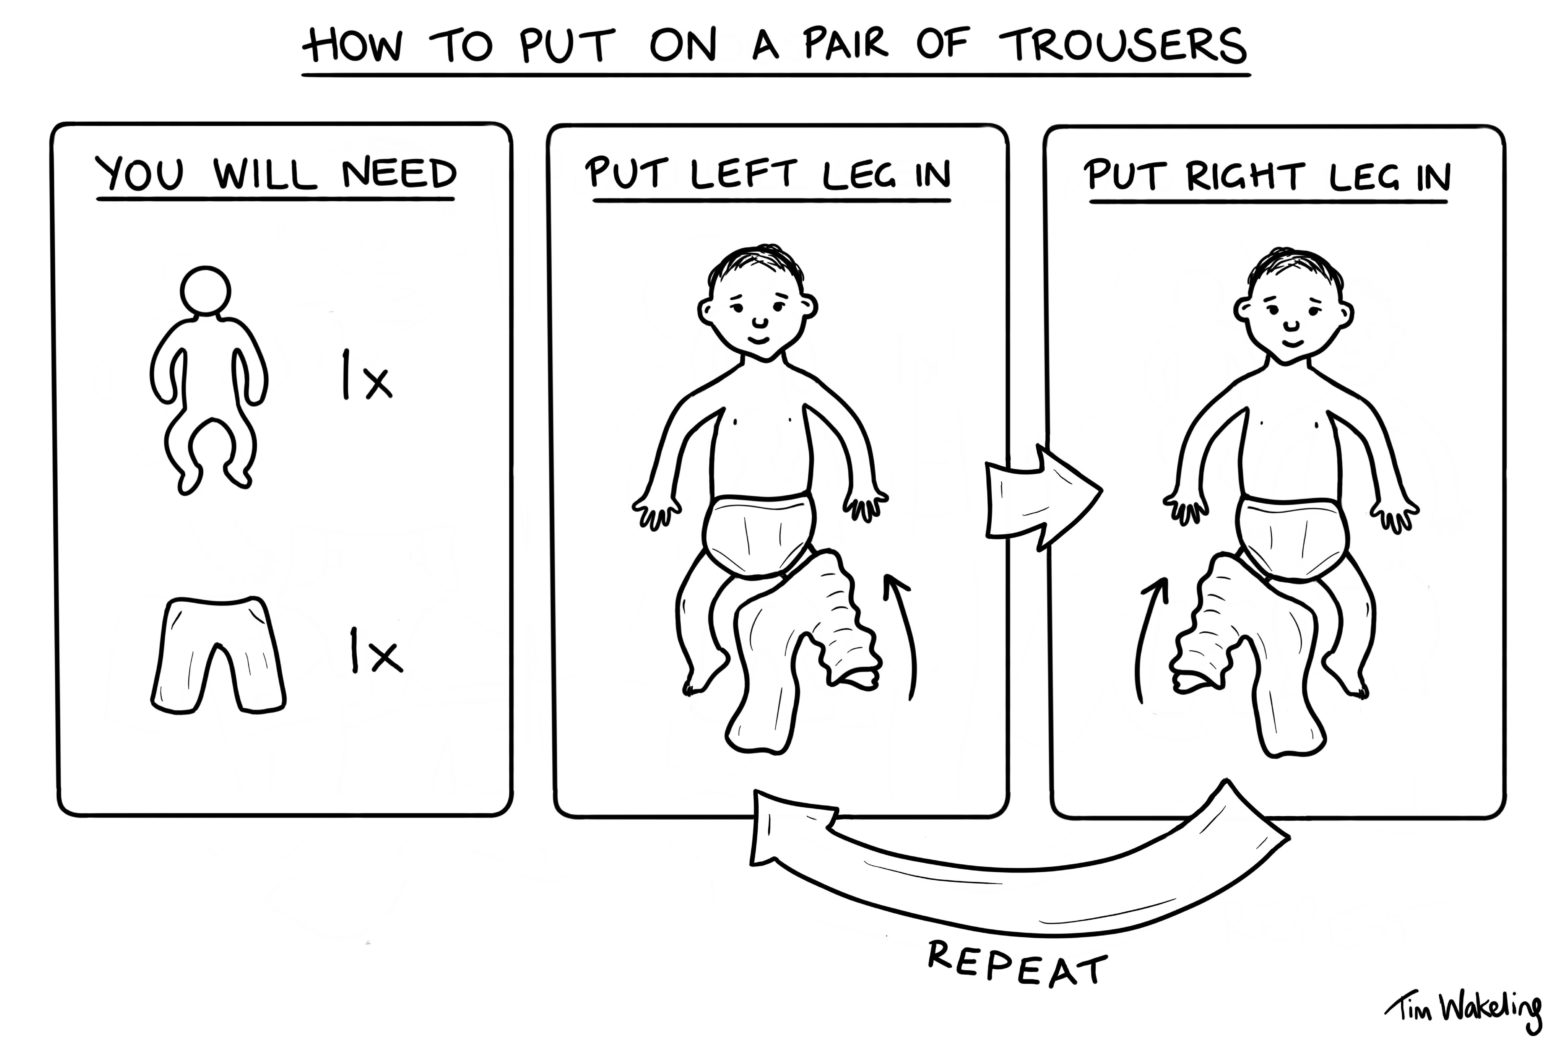 Baby cartoon about putting on a pair of trousers